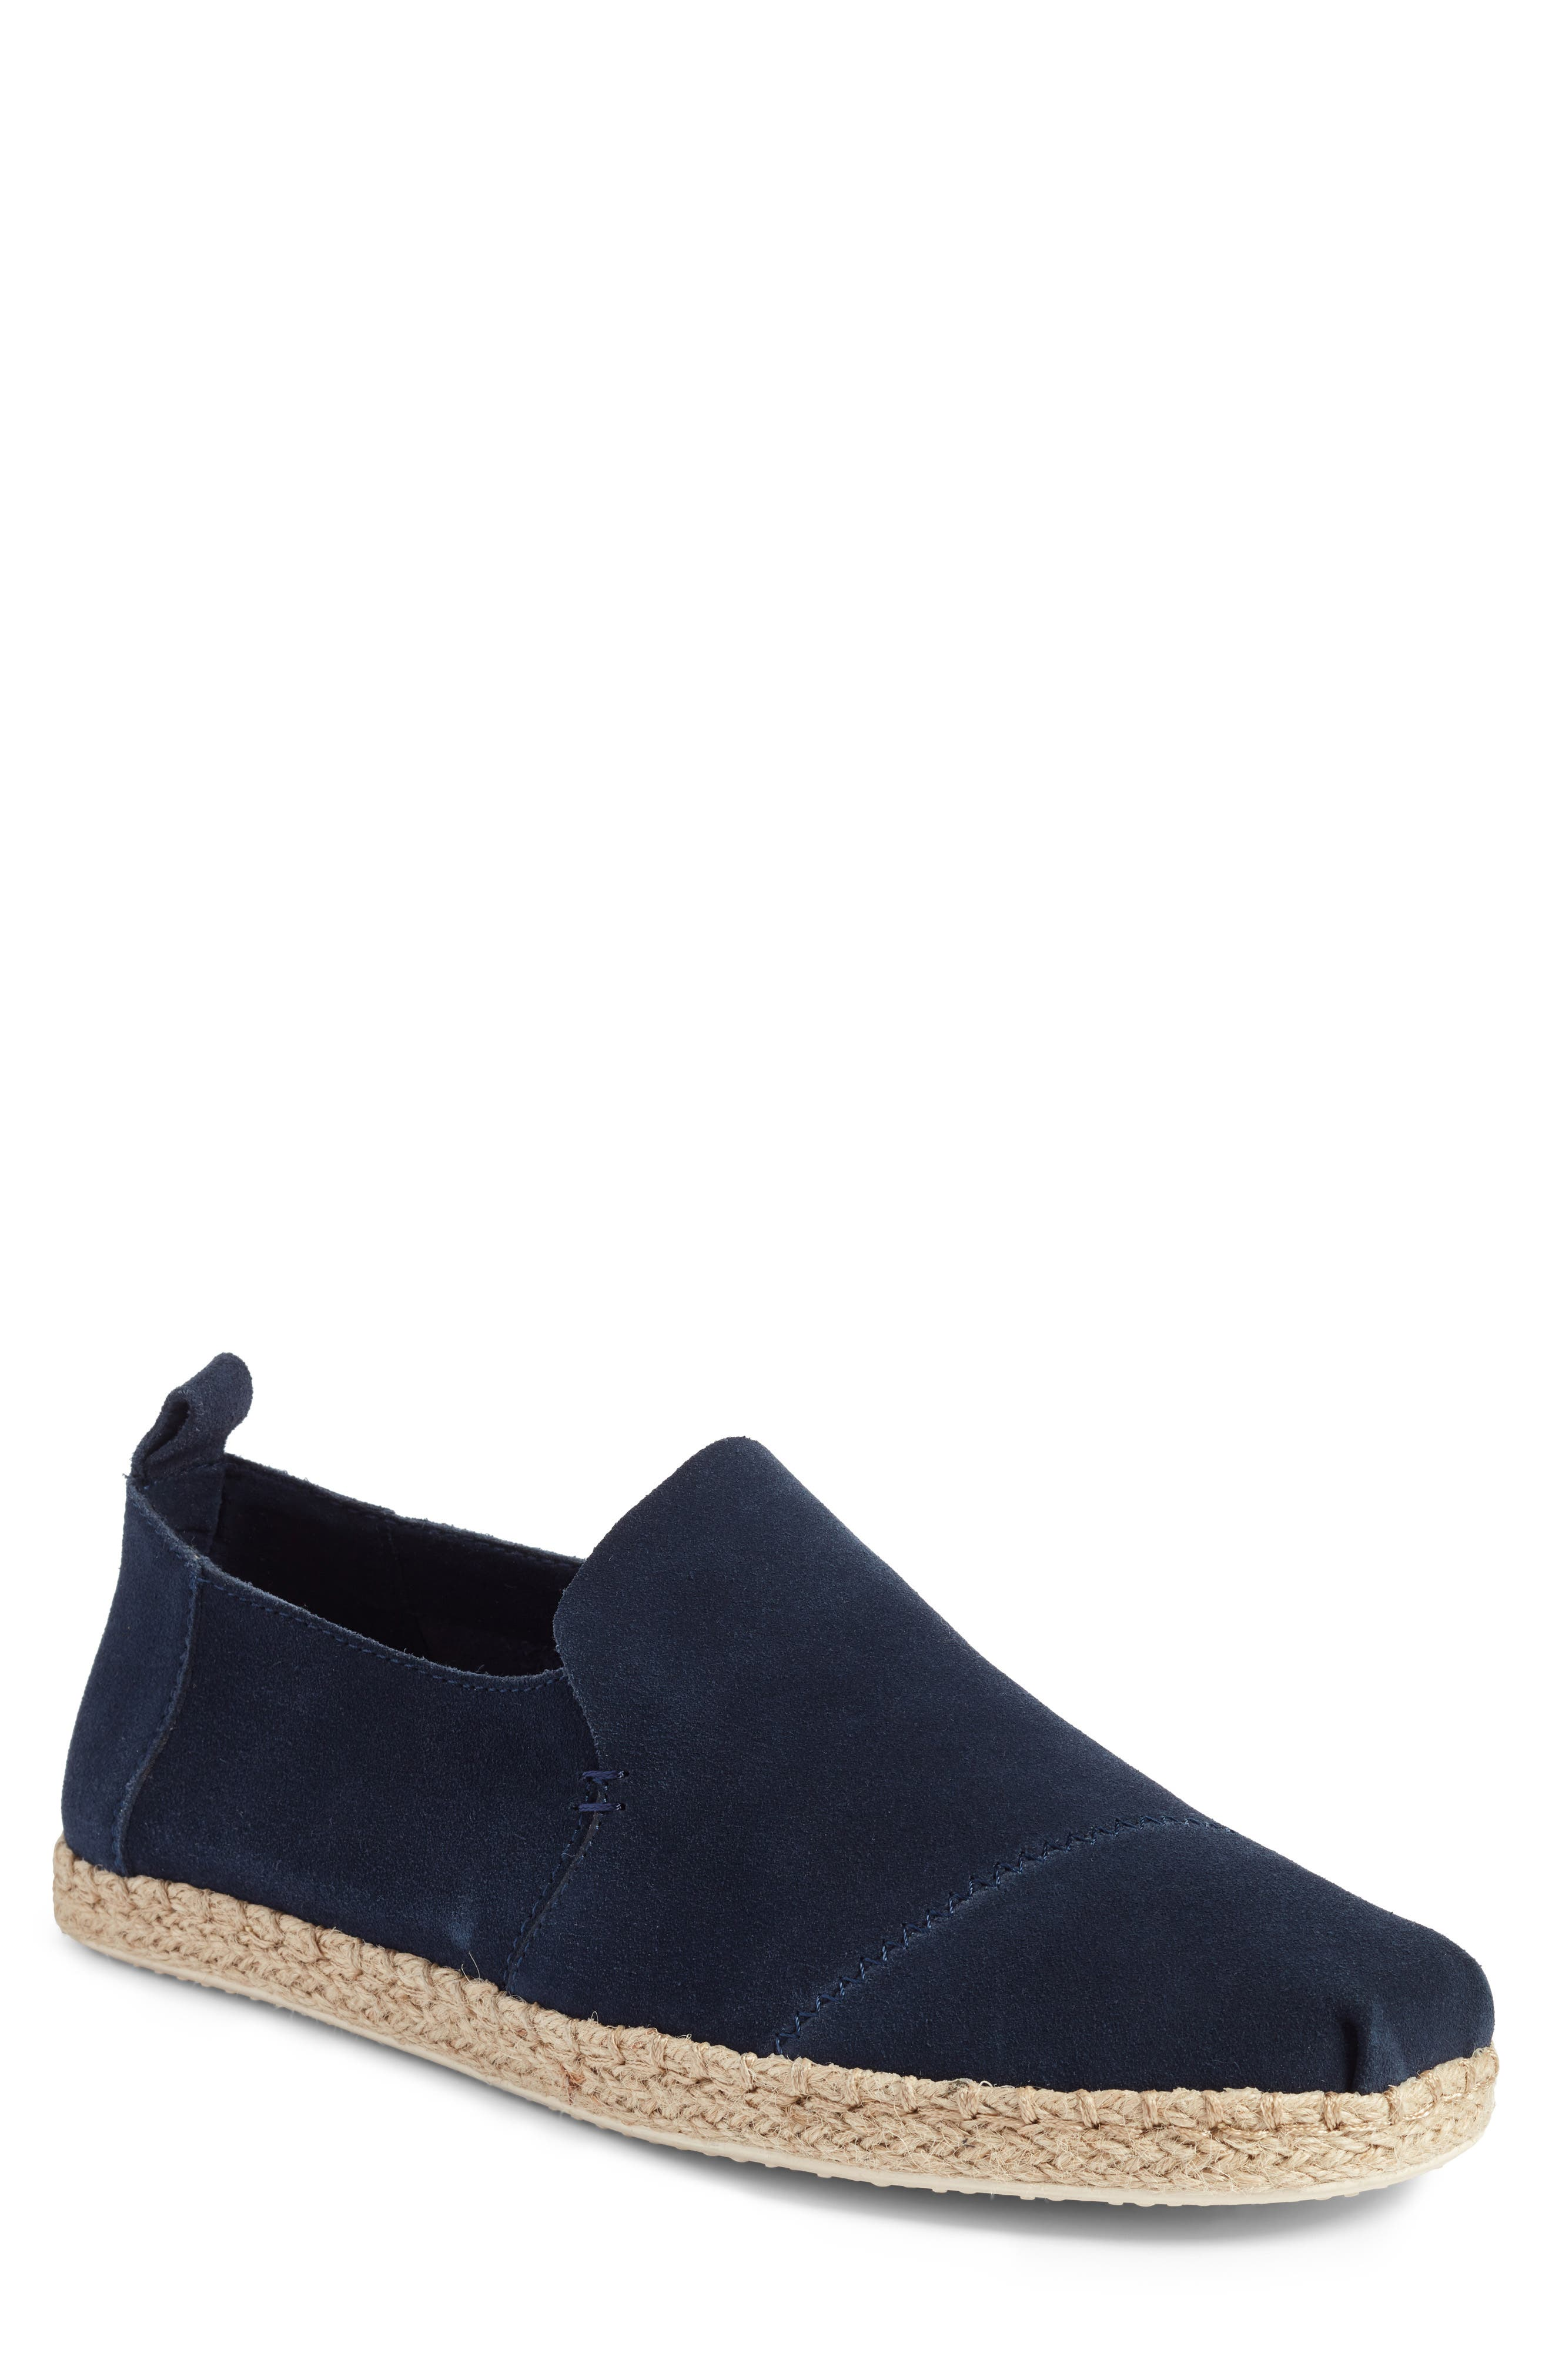 Deconstructed Alpargata,                             Main thumbnail 1, color,                             Navy Suede